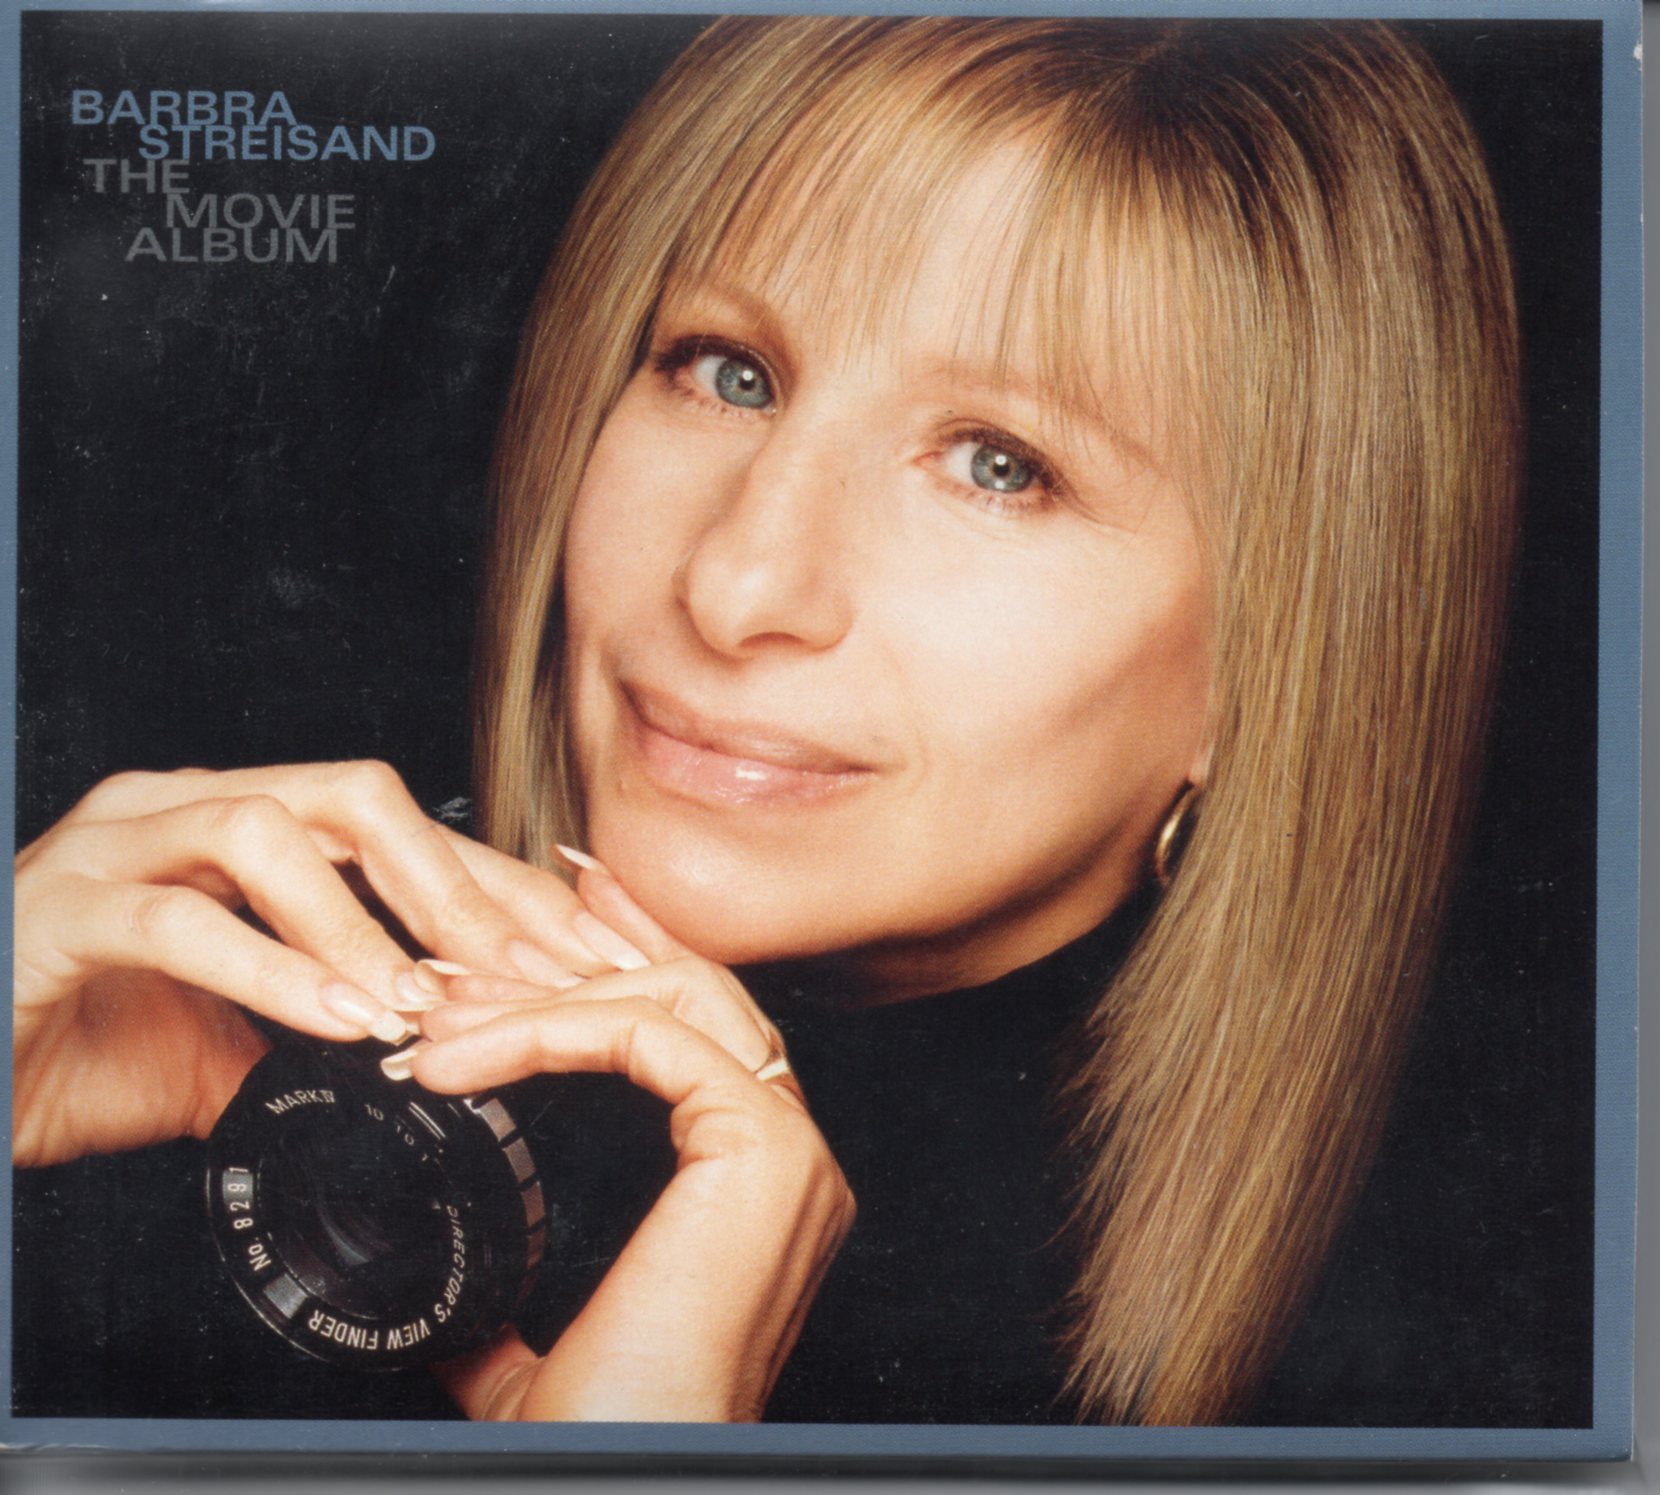 BARBRA STREISAND - The movie Album (CD + DVD) - CD